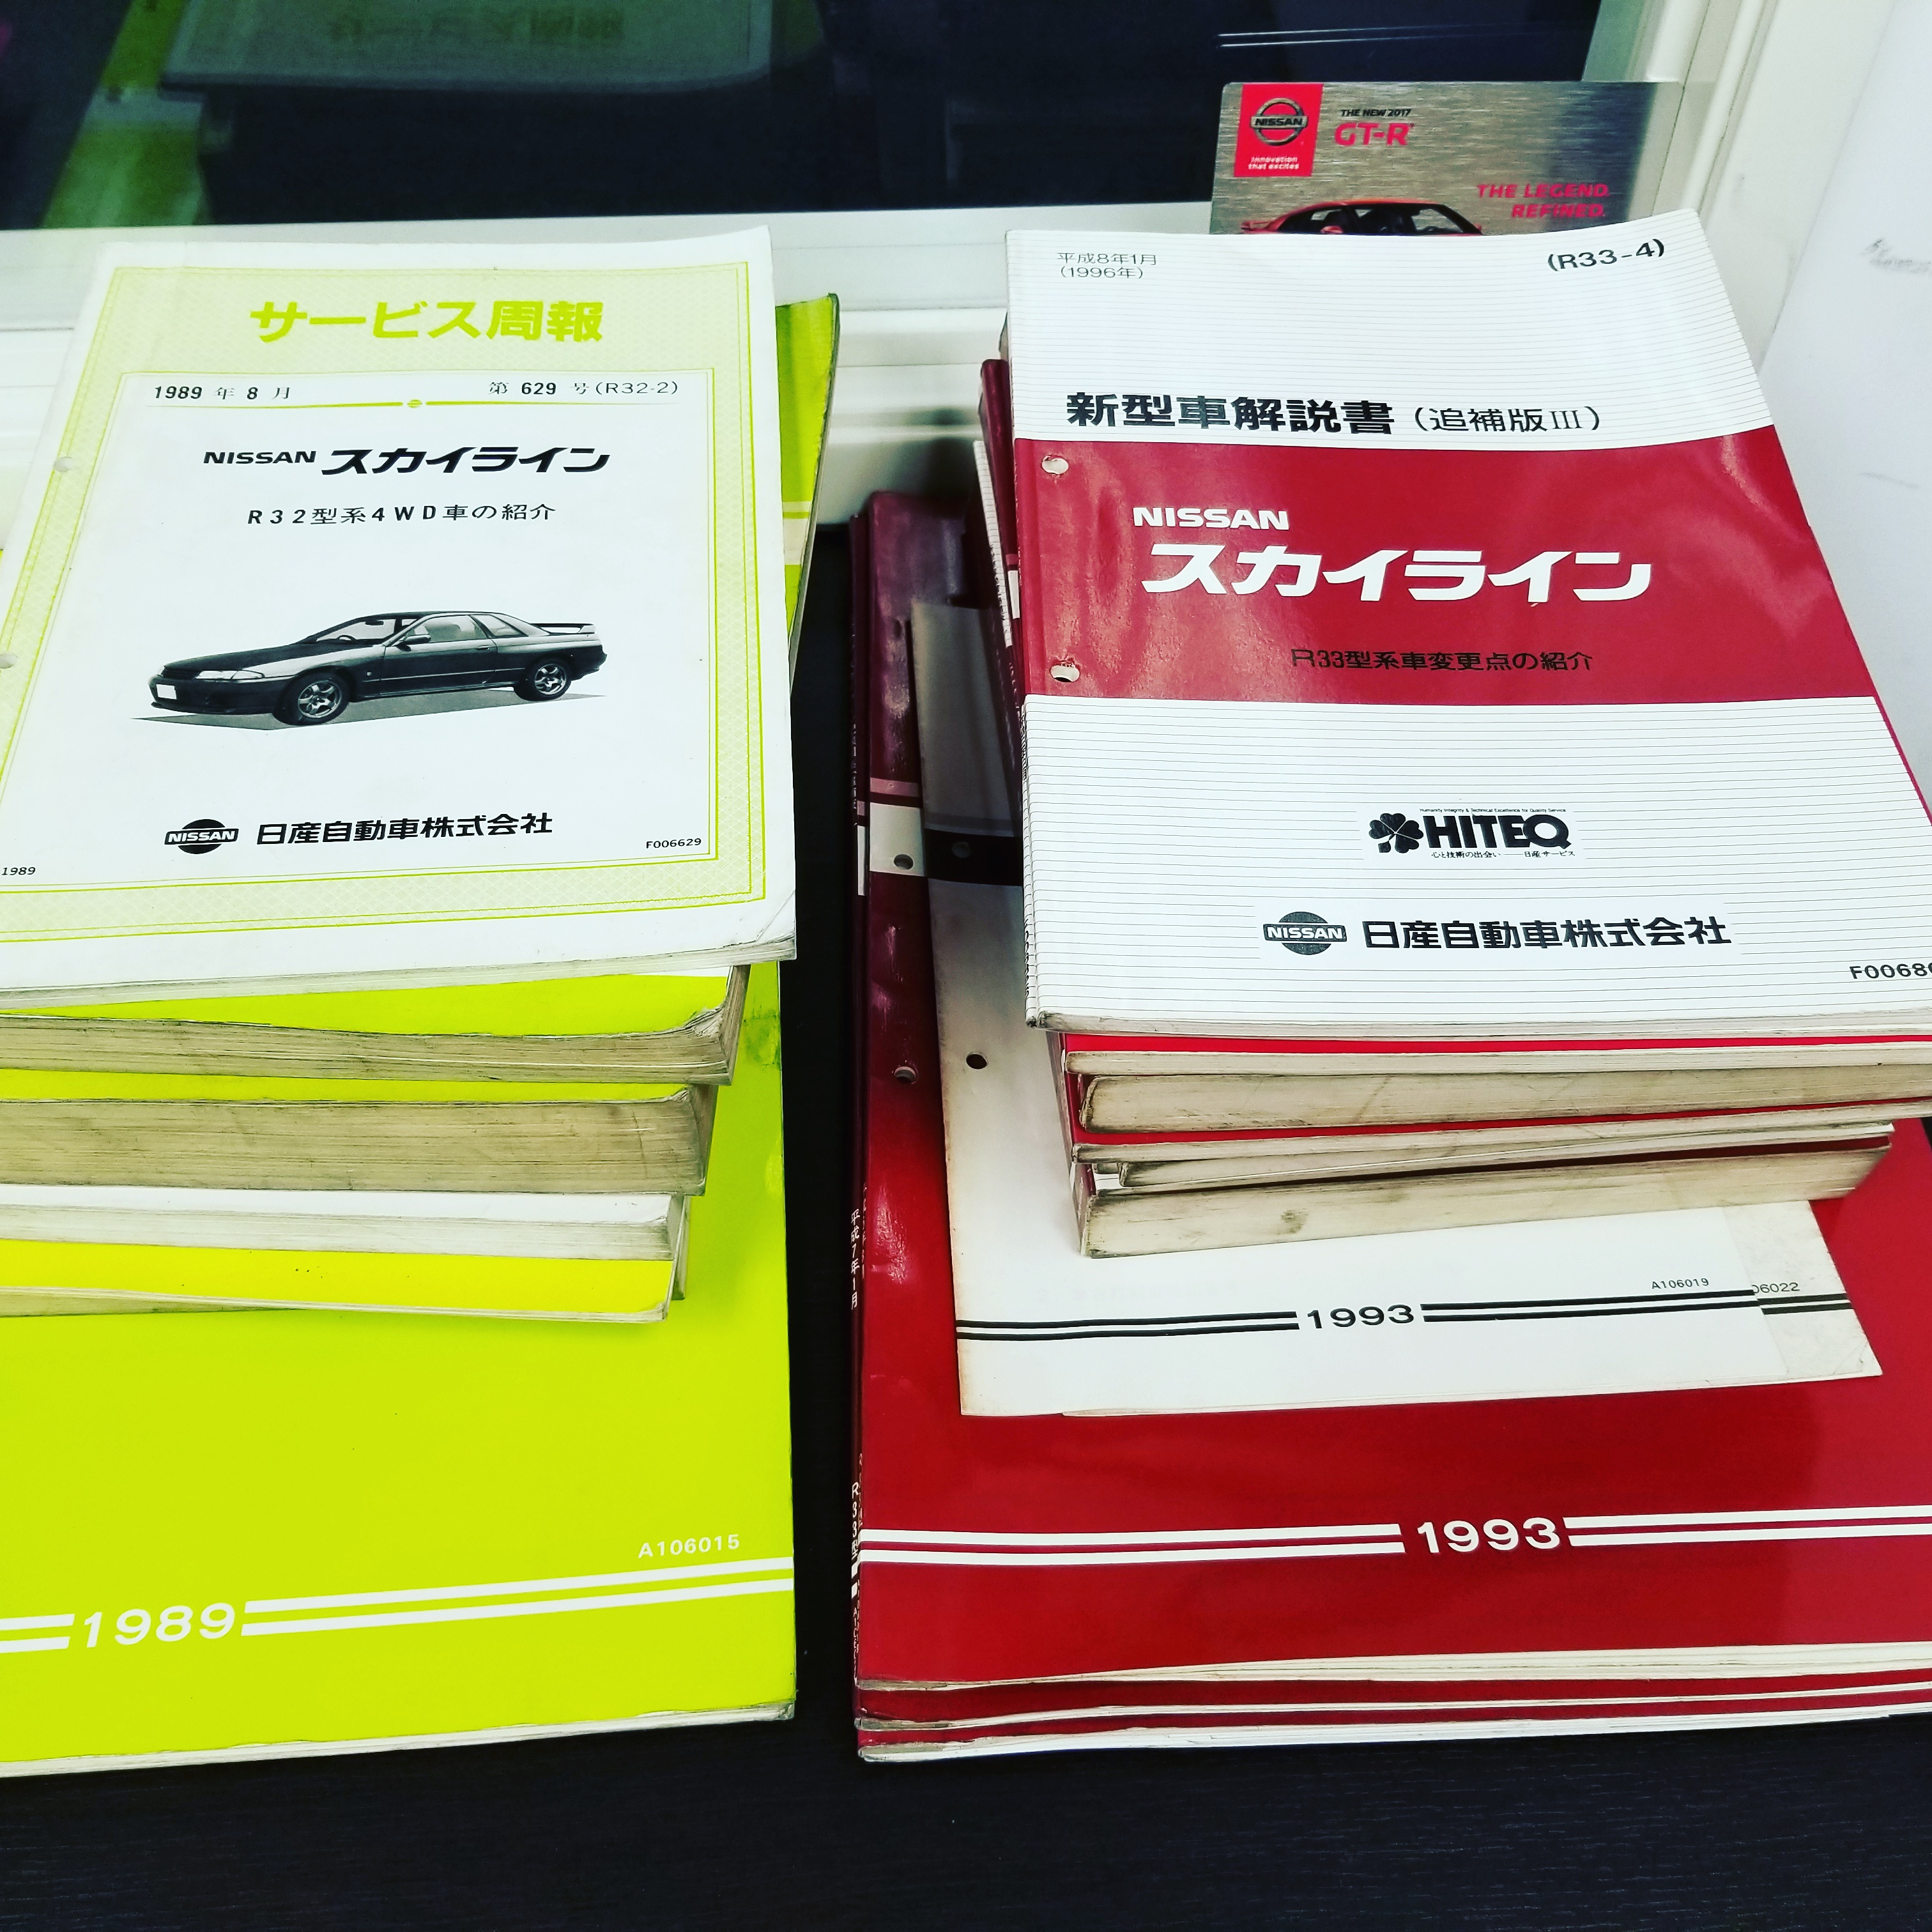 R32 and R33 factory service manuals with wiring diagrams in Japanese